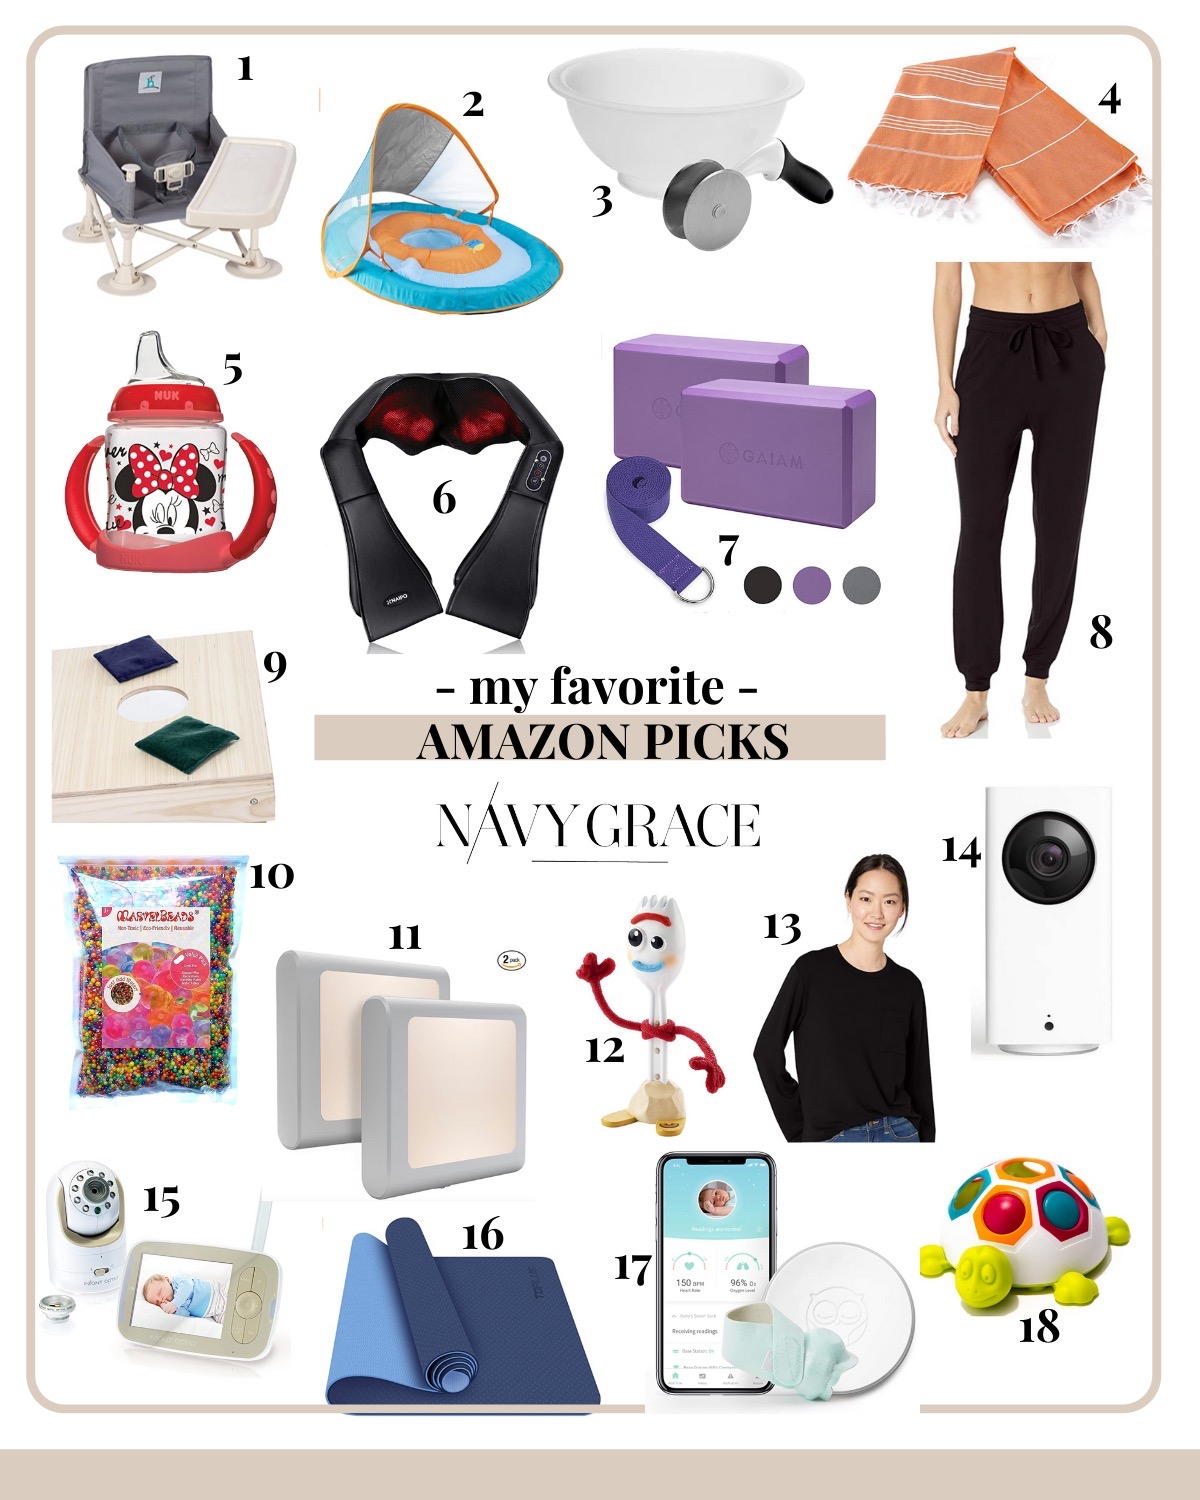 Favorite Things on Amazon by popular San Diego life and style blog, Navy Grace: collage image of a Amazon Owlet baby monitor, Amazon Portable Travel High Chair and Booster, Amazon Infant Pool Float with Sun Canopy, Amazon Salad Bowl and Cutter, Amazon Kids Beach/Pool Towel, Amazon Mini Mouse NUK Sippy Cup, Amazon Neck and Back Massager, Amazon Yoga Blocks, Amazon Black Loungewear Pants, Amazon Corn Hole Bags, Amazon water beads, Amazon LED Night Lights, Amazon Forky Toy Story Toy, Amazon Black Loungewear Top, Amazon Wyze Baby Monitor Camera, Amazon Infant Optics DXR-8 Baby Monitor, Amazon yoga mat, Amazon Turtle Baby Toy.